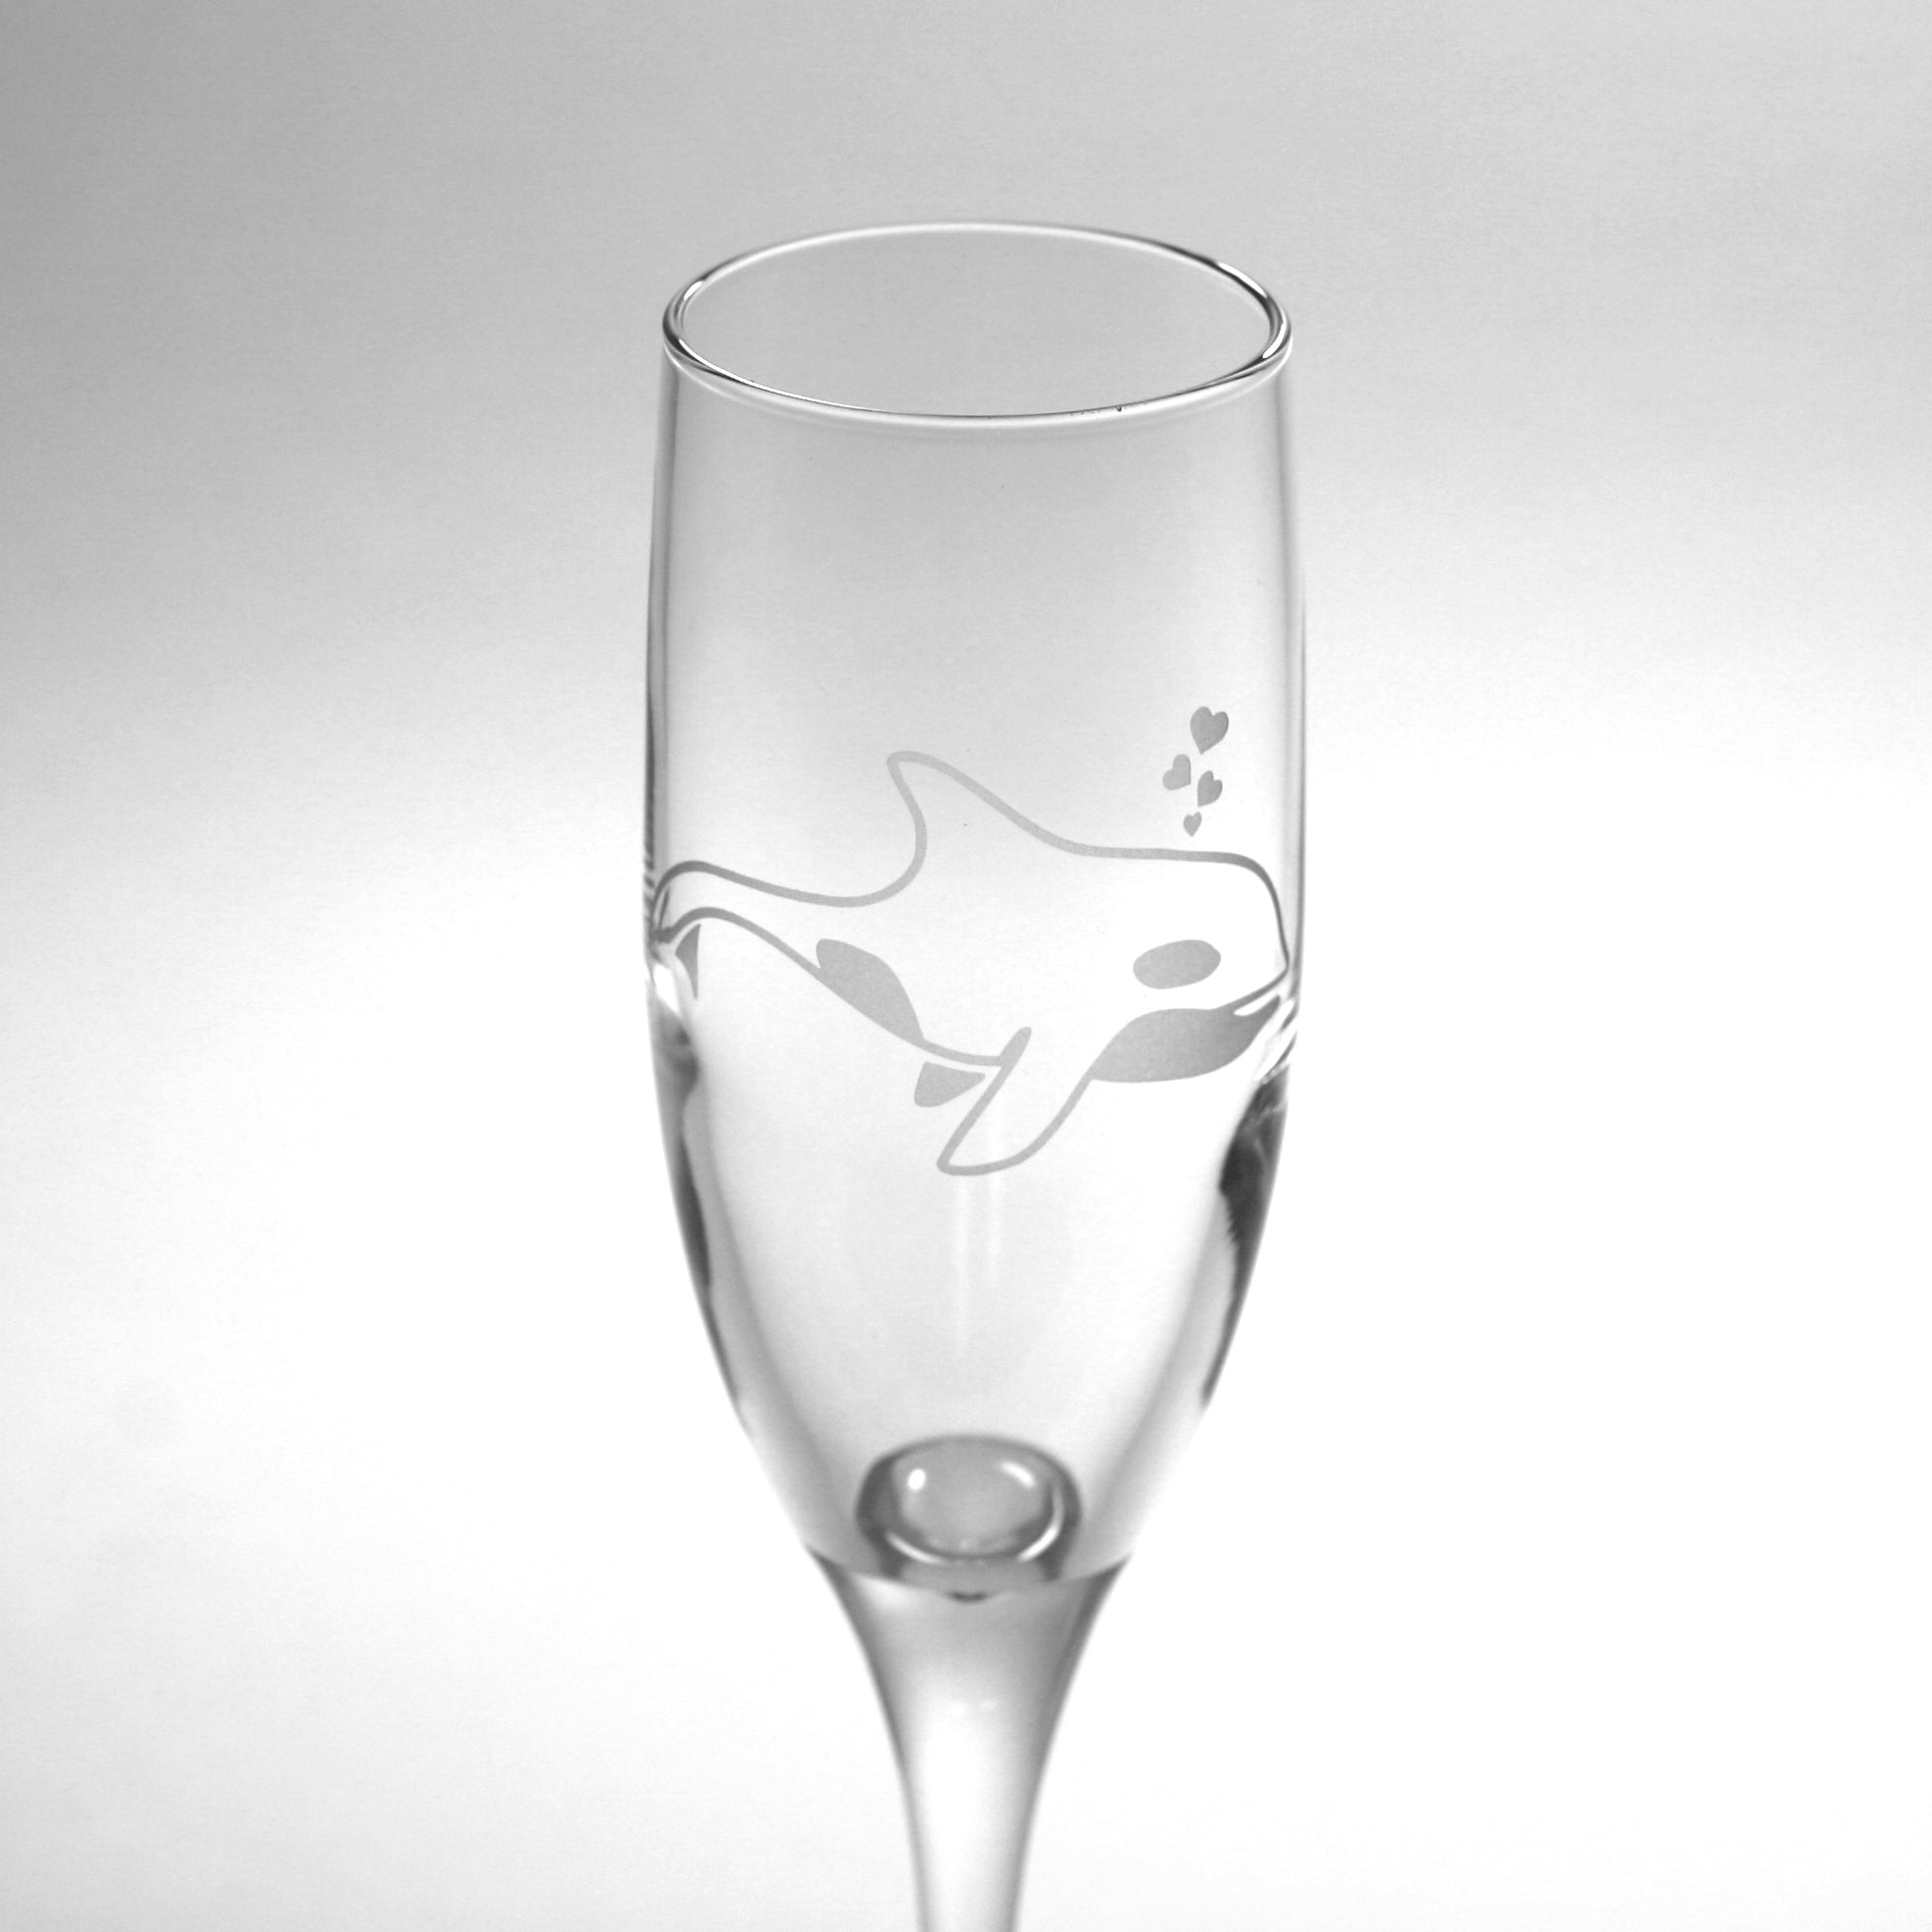 Orca Whale champagne flute by Bread and Badger